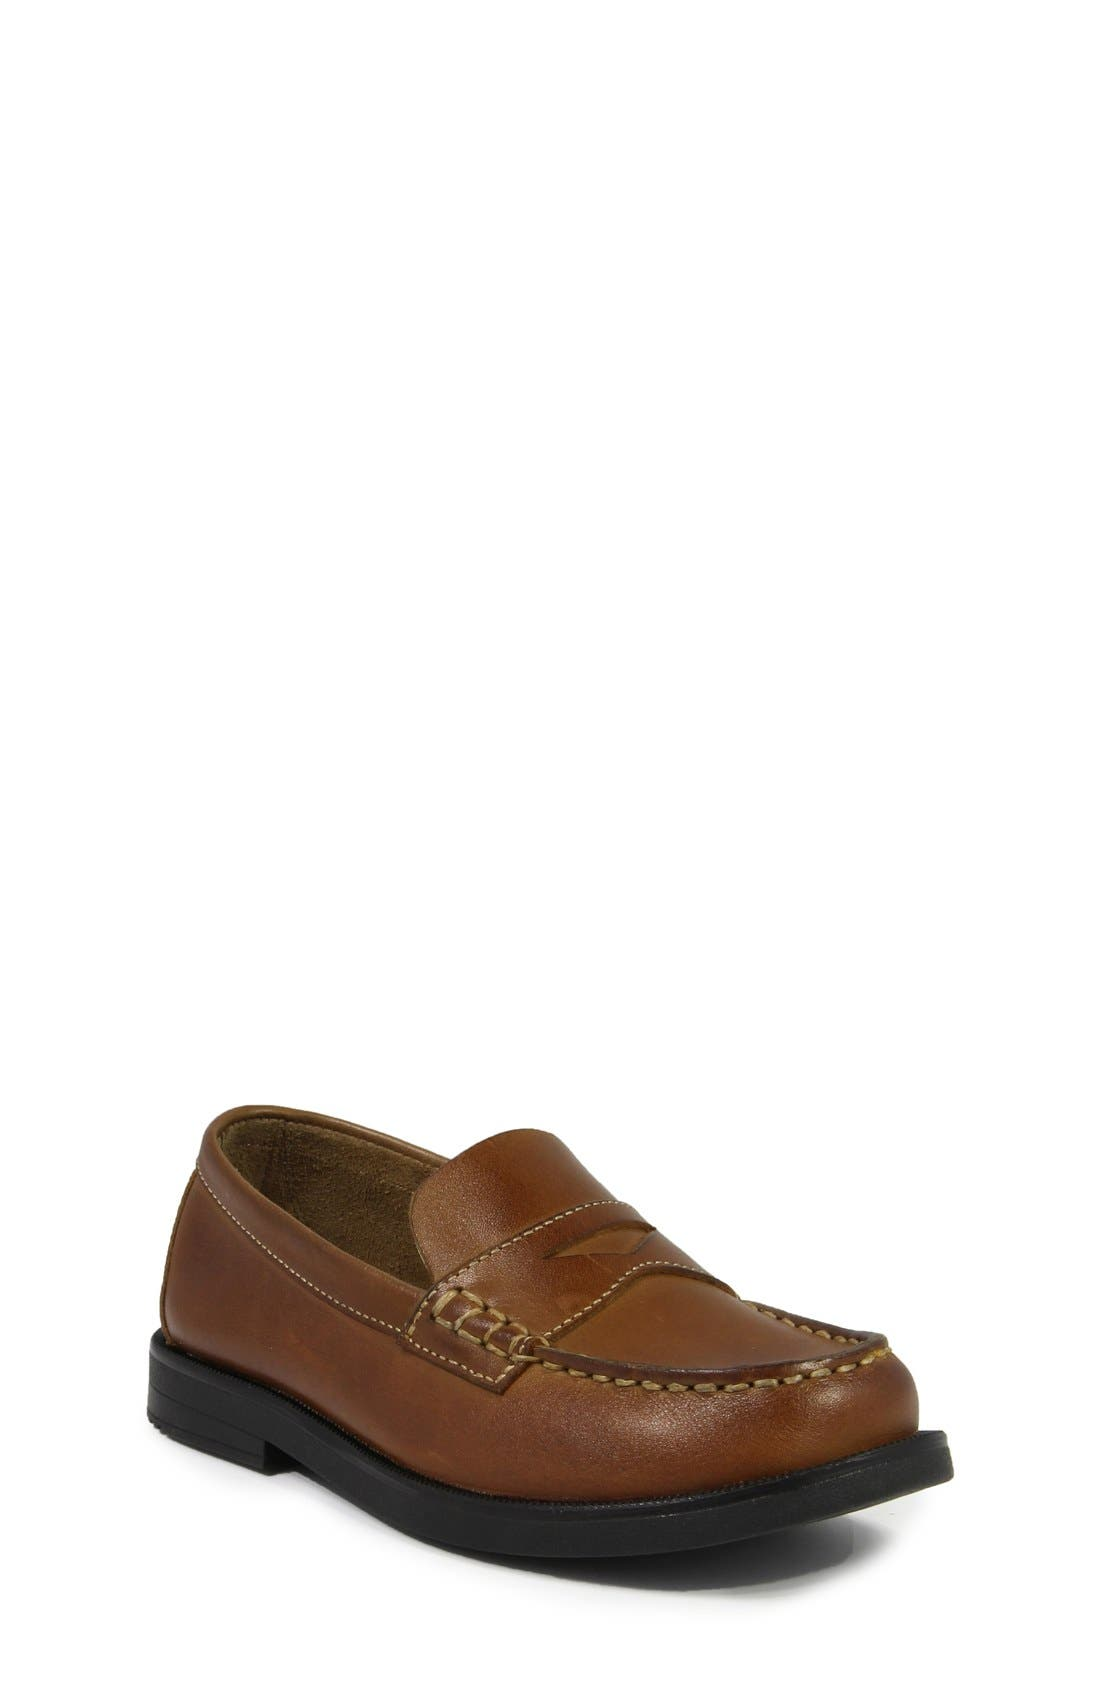 Florsheim 'Croquet' Penny Loafer (Toddler, Little Kid & Big Kid)